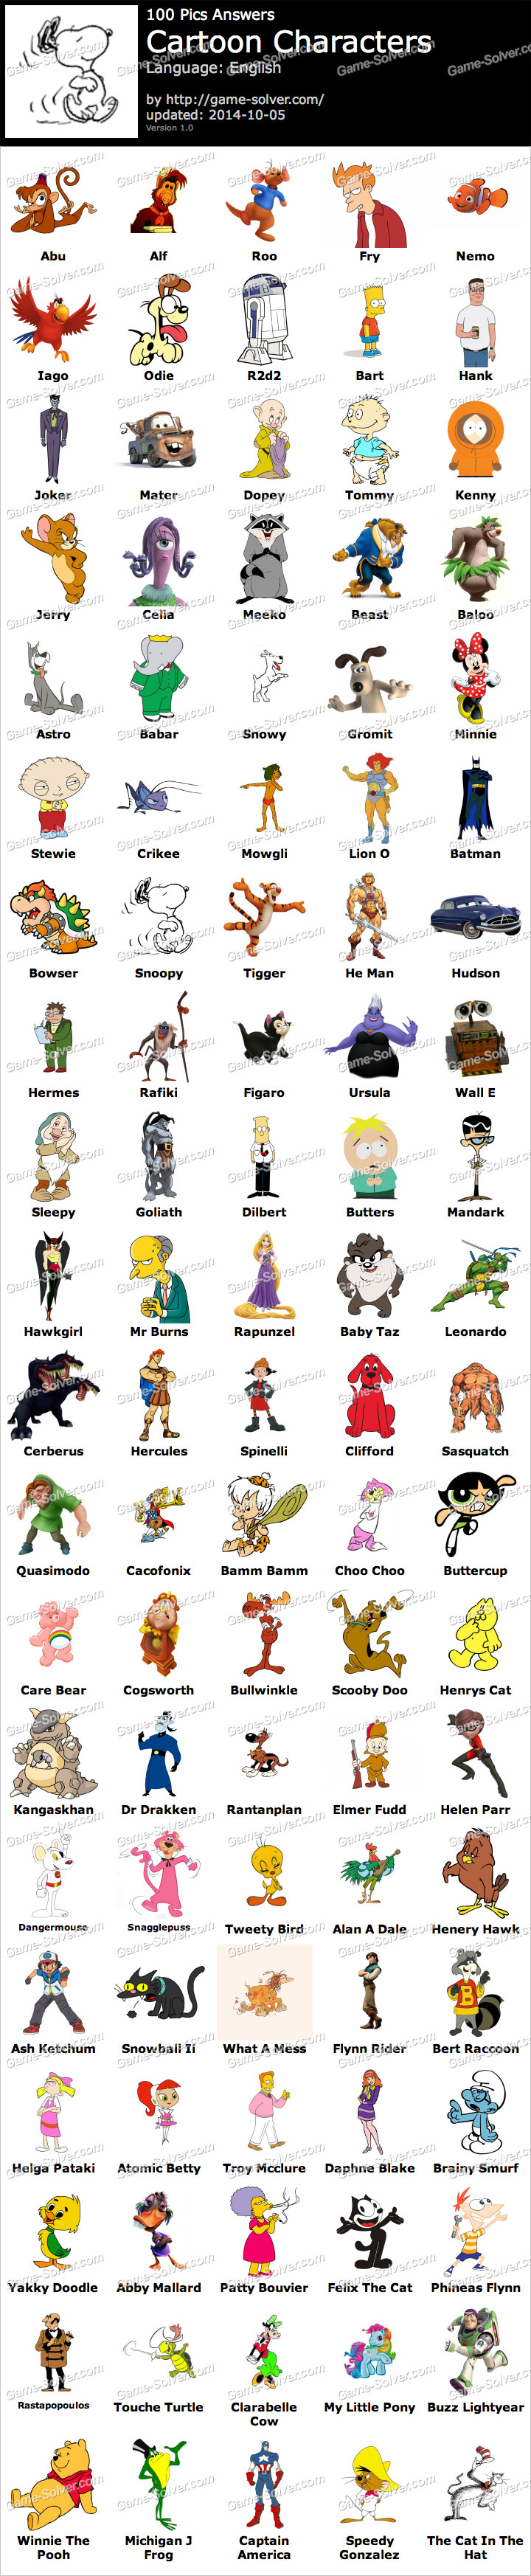 Cartoon Characters 2 100 Pics : Pics cartoon characters game solver